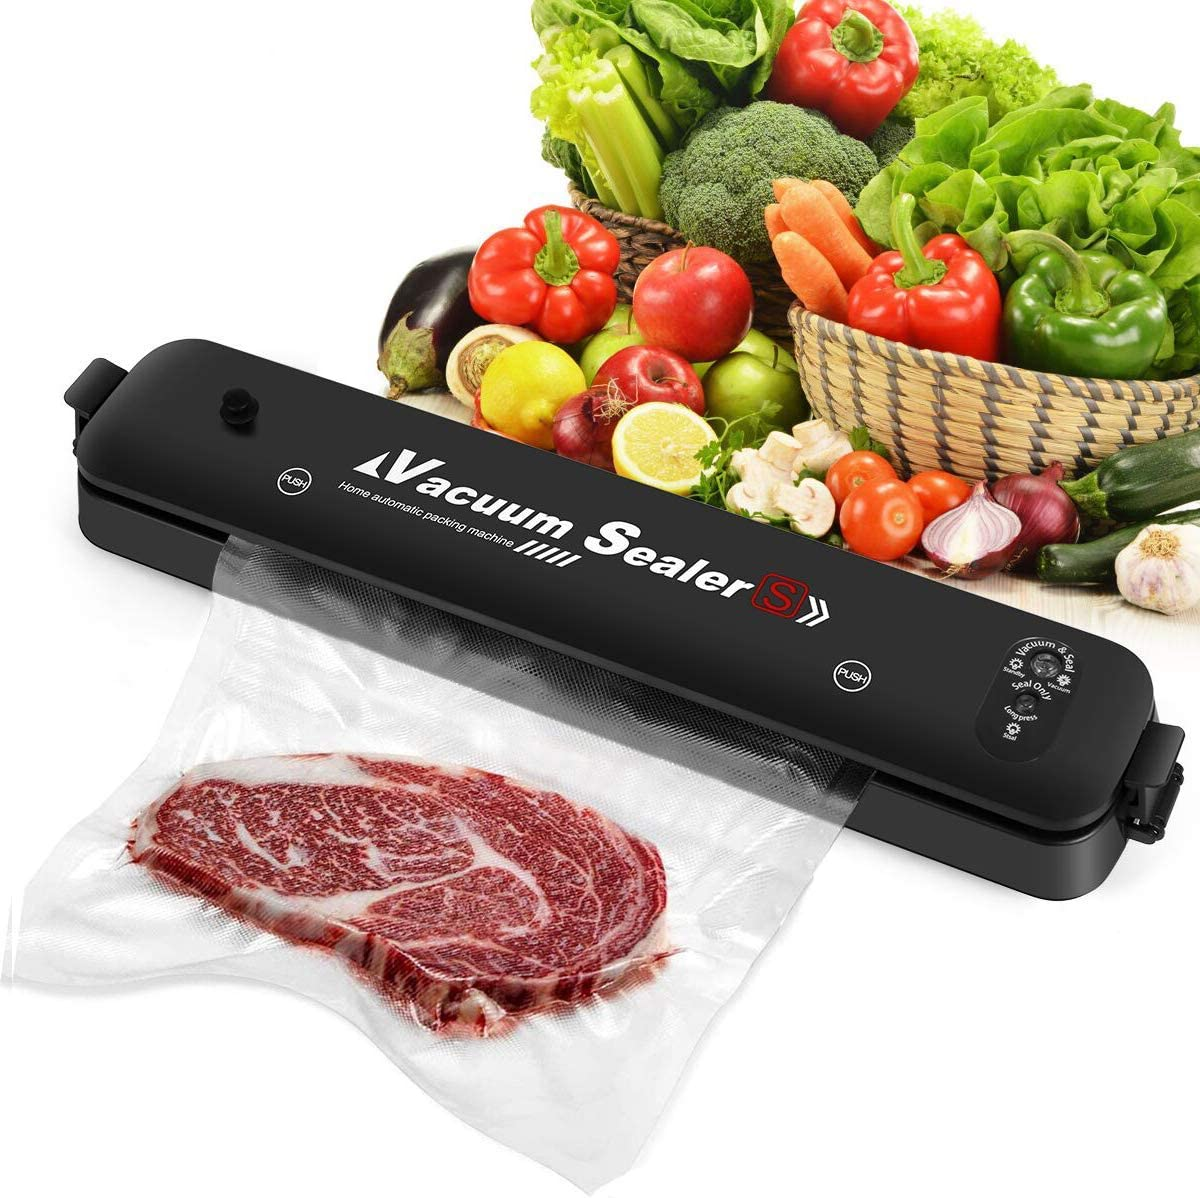 Vacuum Sealer, Automatic Food Sealer with 15 Bags, Dry & Moist Food Modes, Compact Design, Easy to Clean, Food Sealer Machine Solve a Big Problem for Leftovers, Led Indicator Lights (Black)